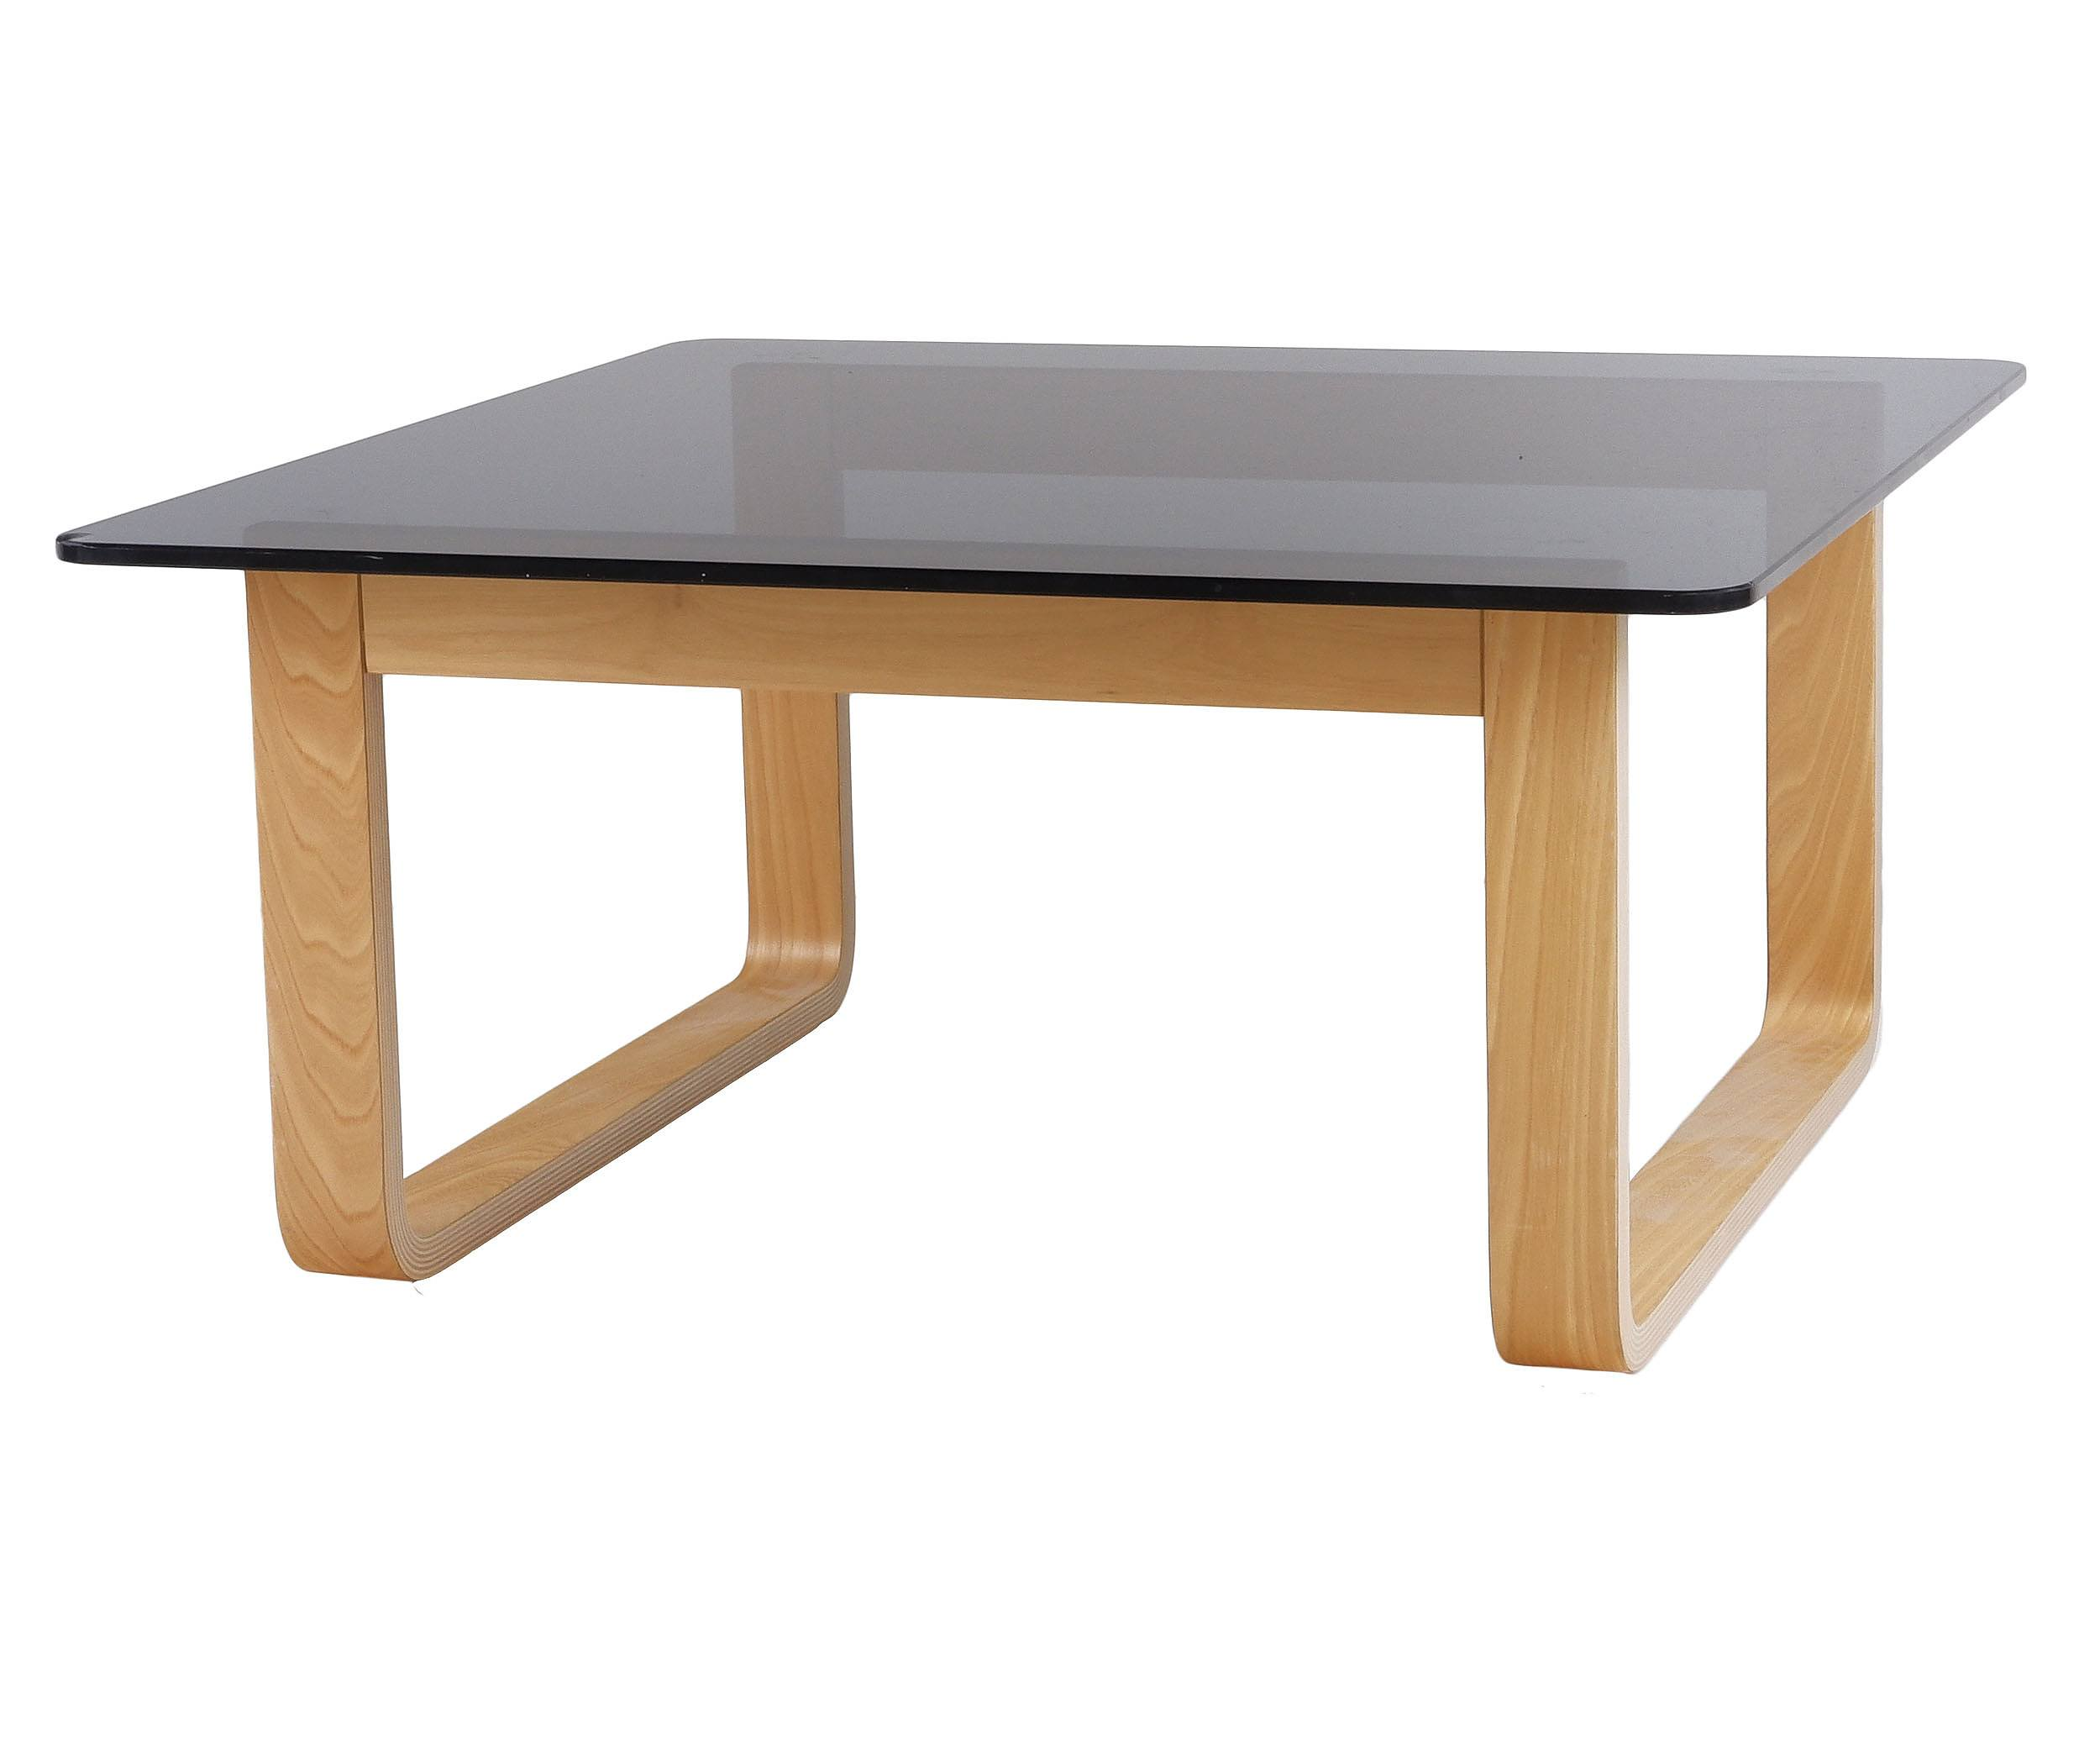 'Tessa Laminated Ply and Grey Tint Glass Table'